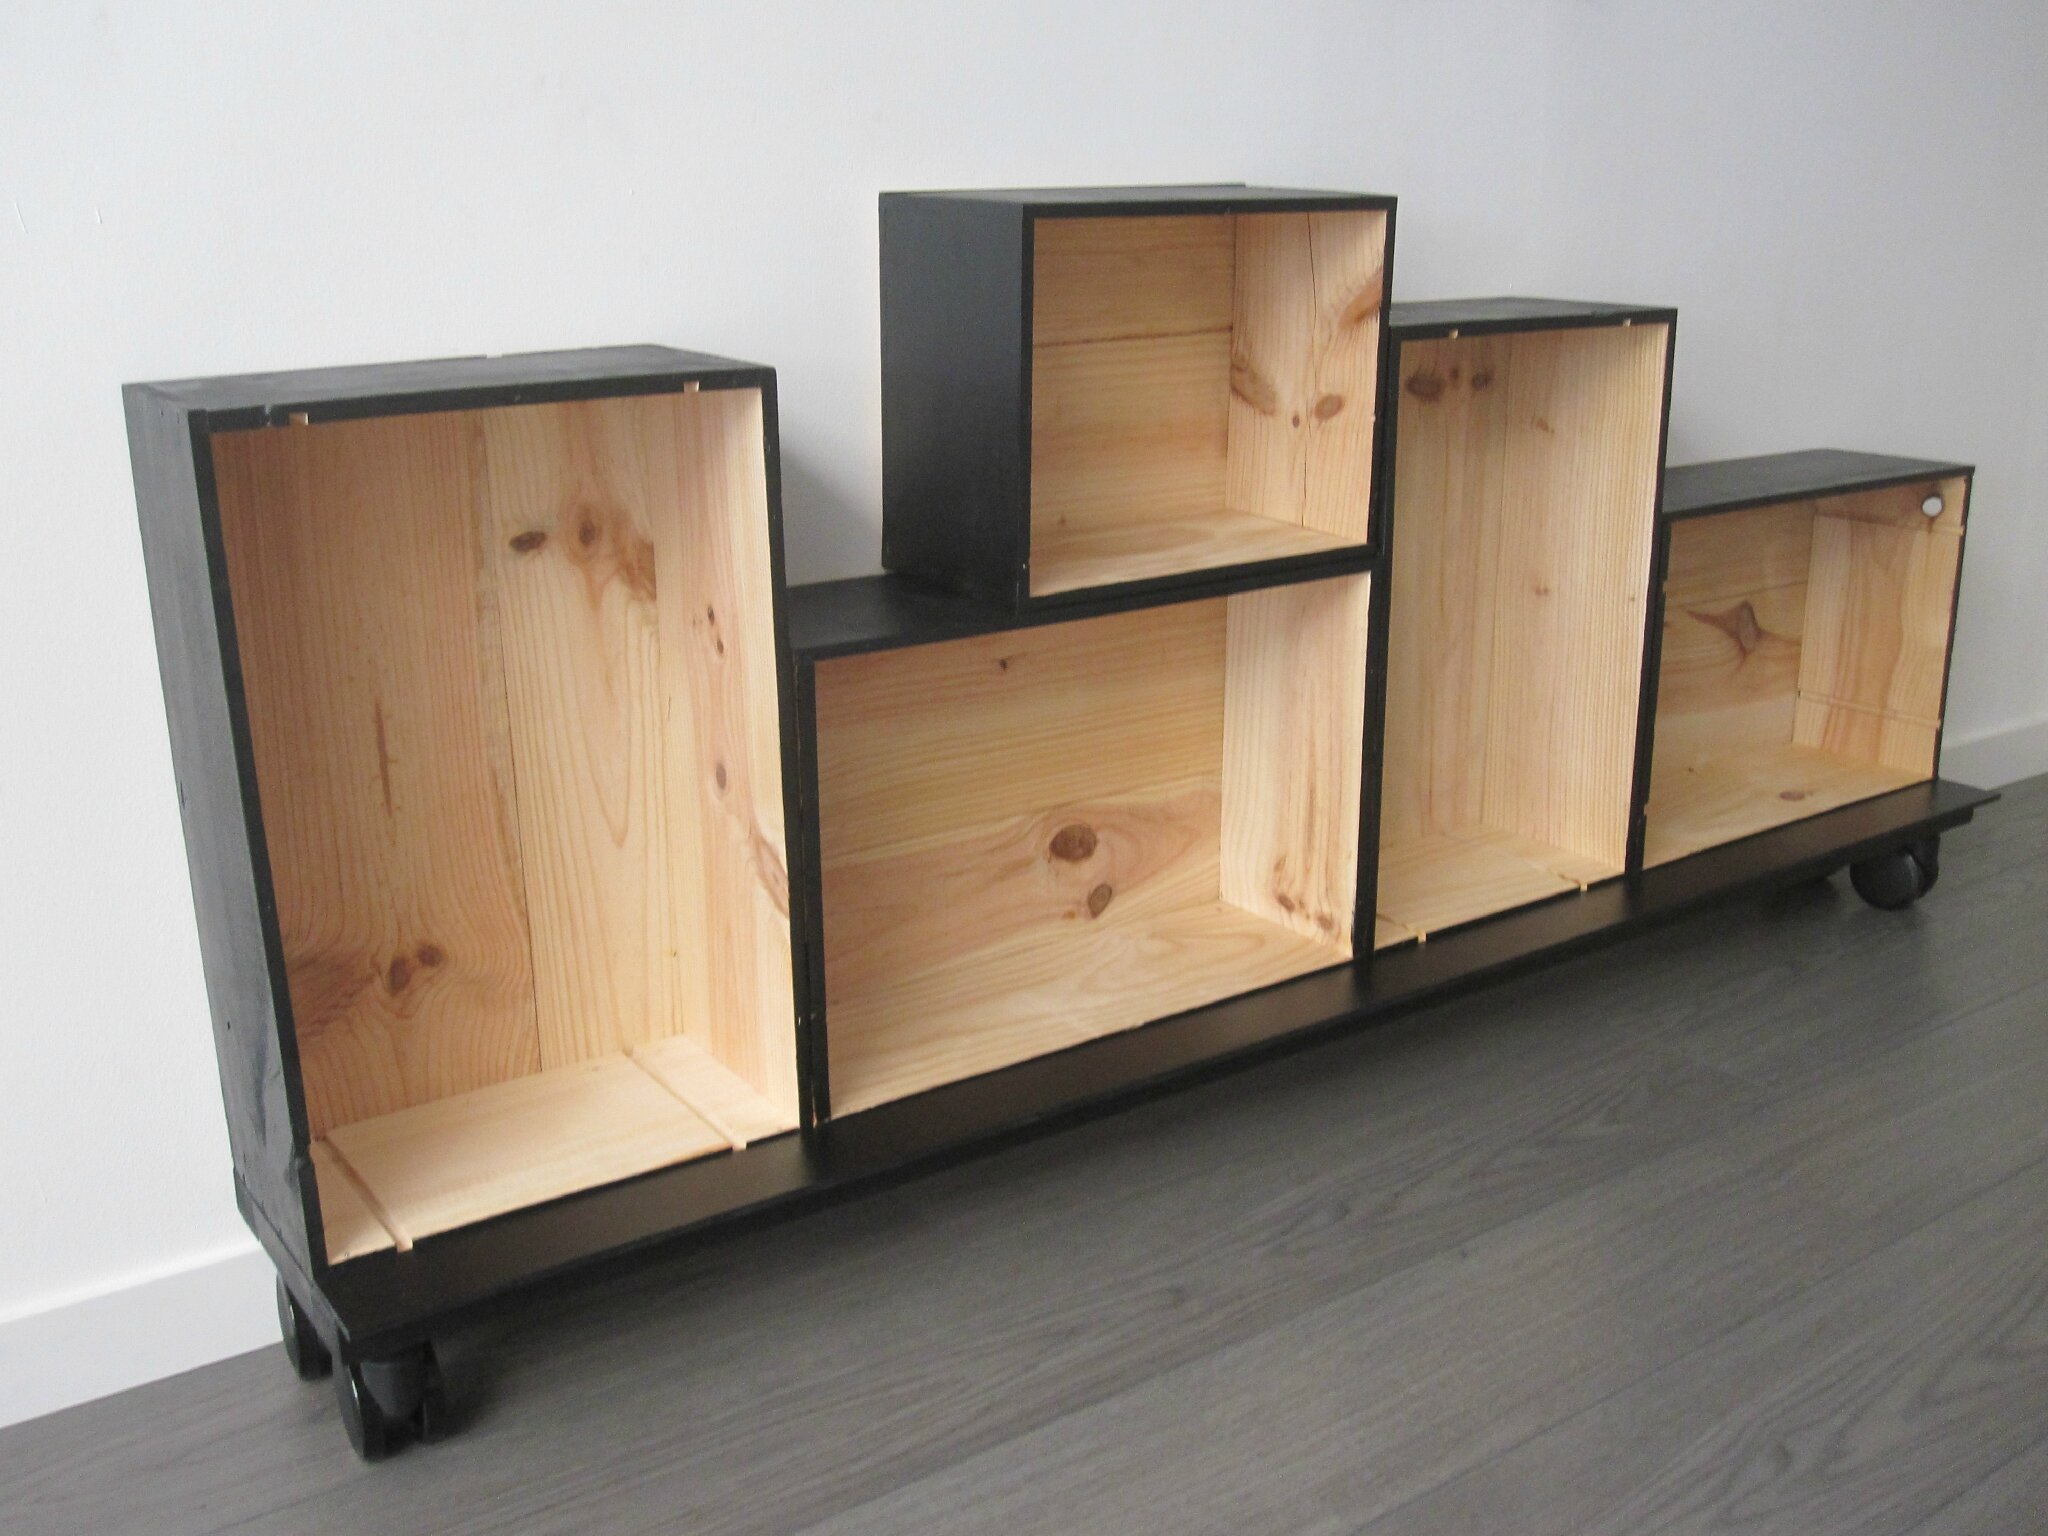 caisse de vin en bois bricolage. Black Bedroom Furniture Sets. Home Design Ideas